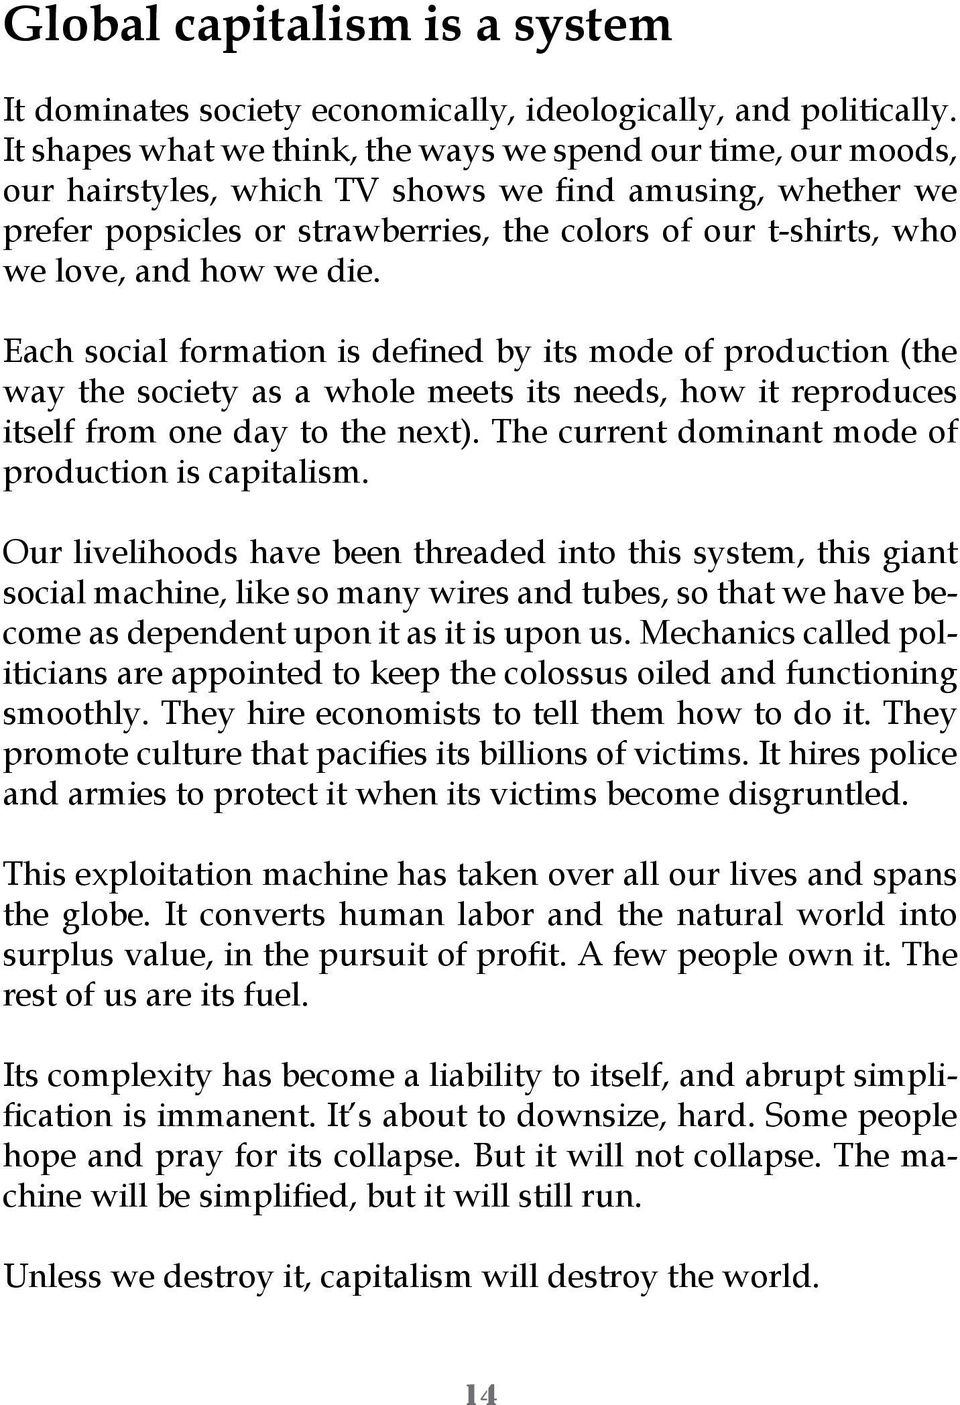 and how we die. Each social formation is defined by its mode of production (the way the society as a whole meets its needs, how it reproduces itself from one day to the next).